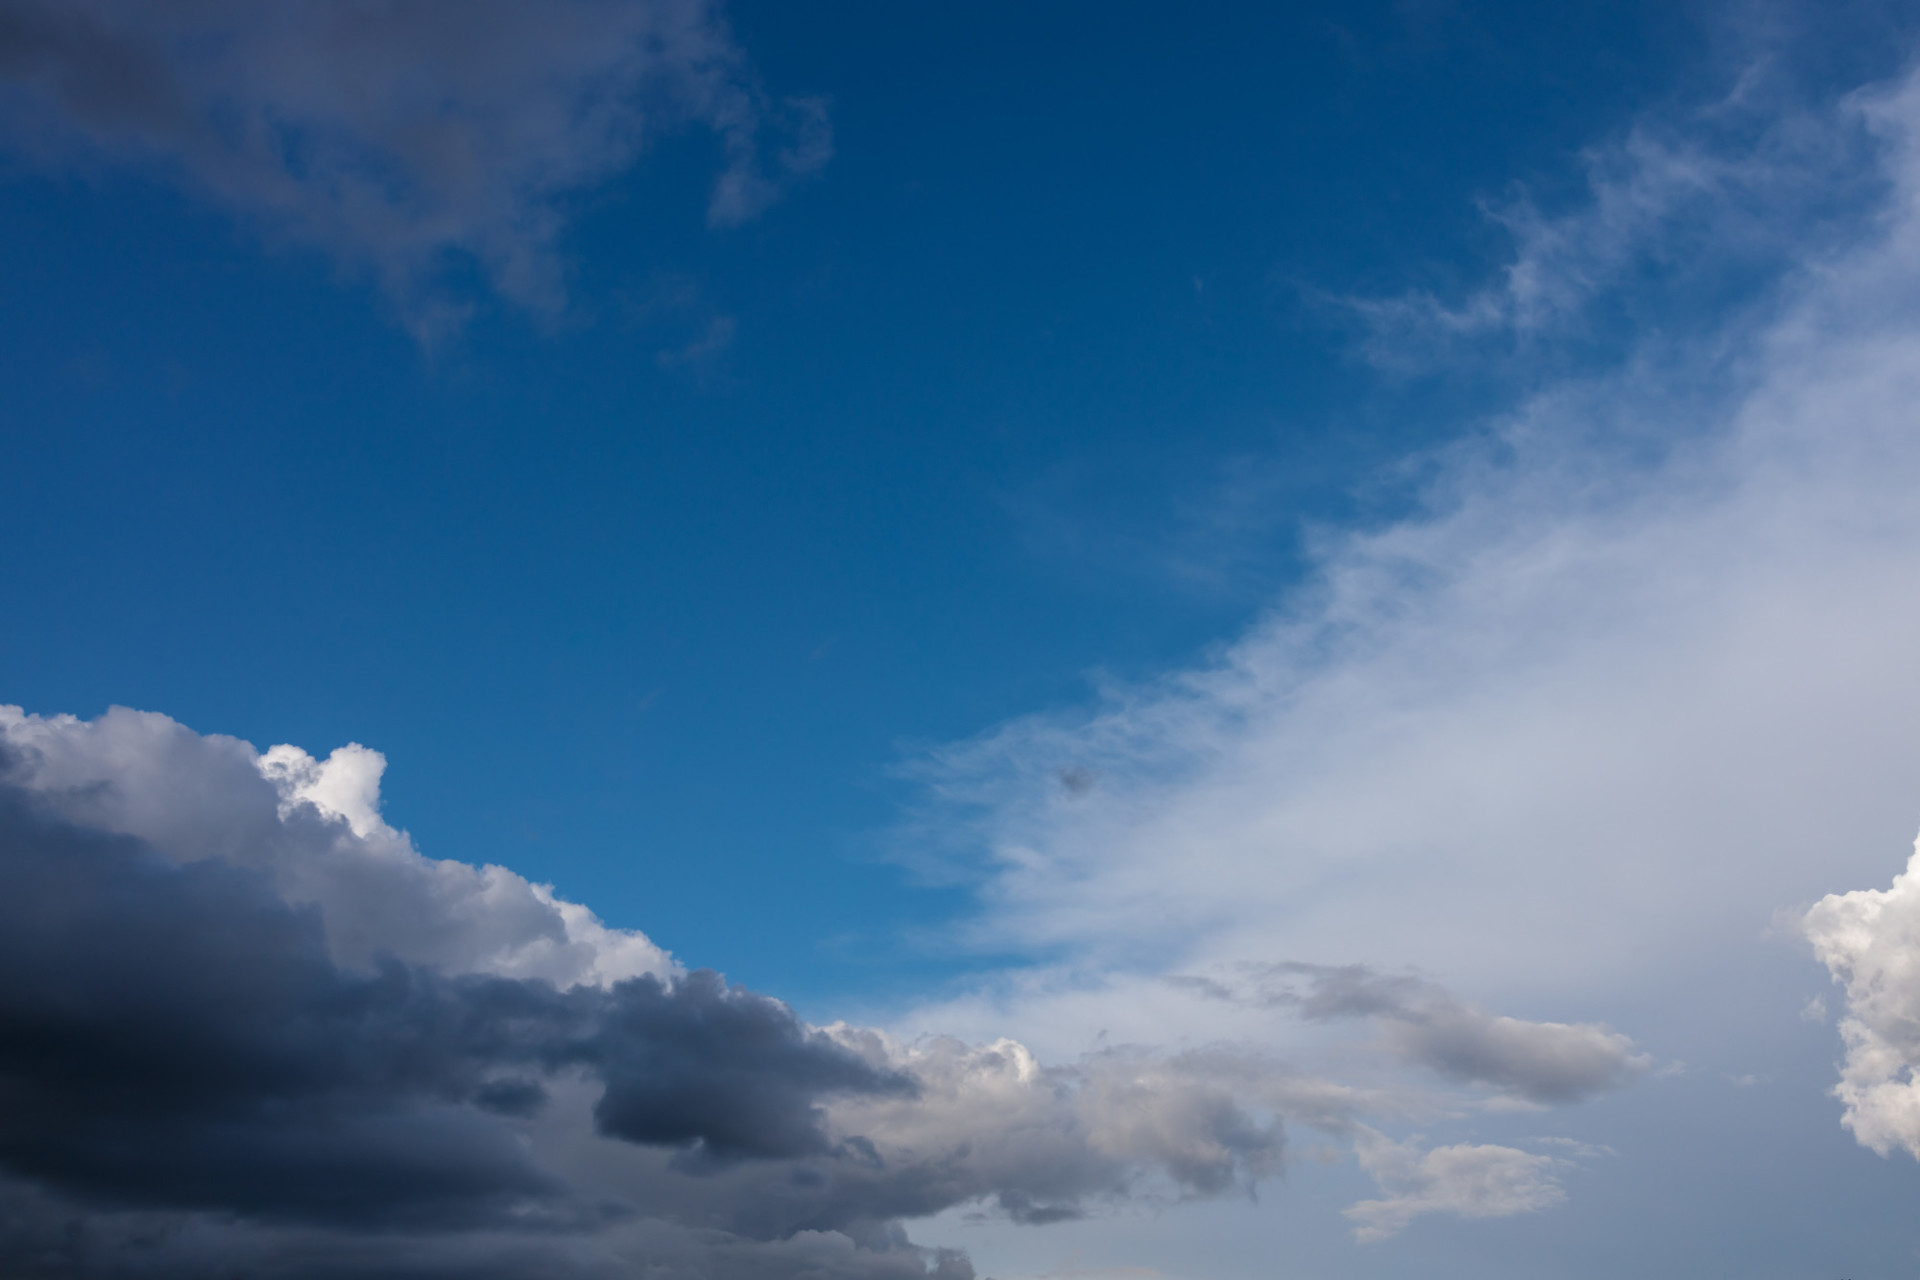 Cloud rich sky background for sky replacement